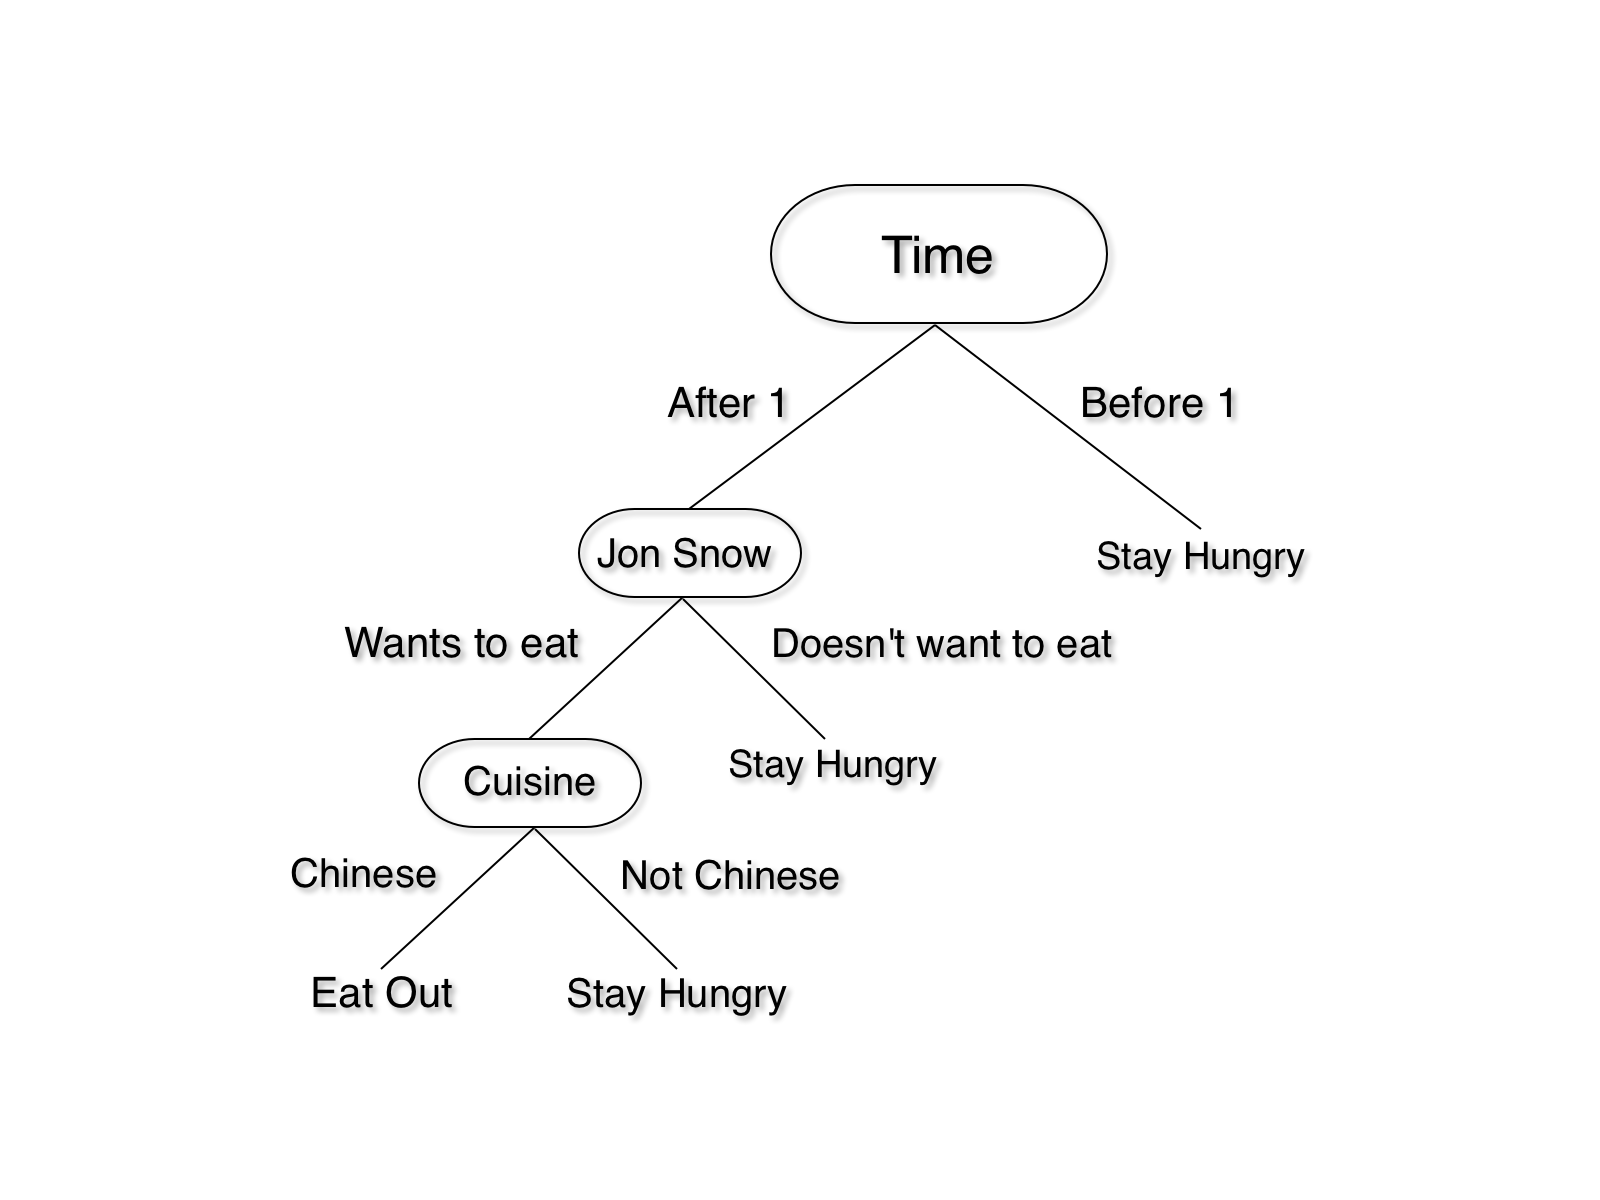 Introduction to Decision Tree Learning - Heartbeat